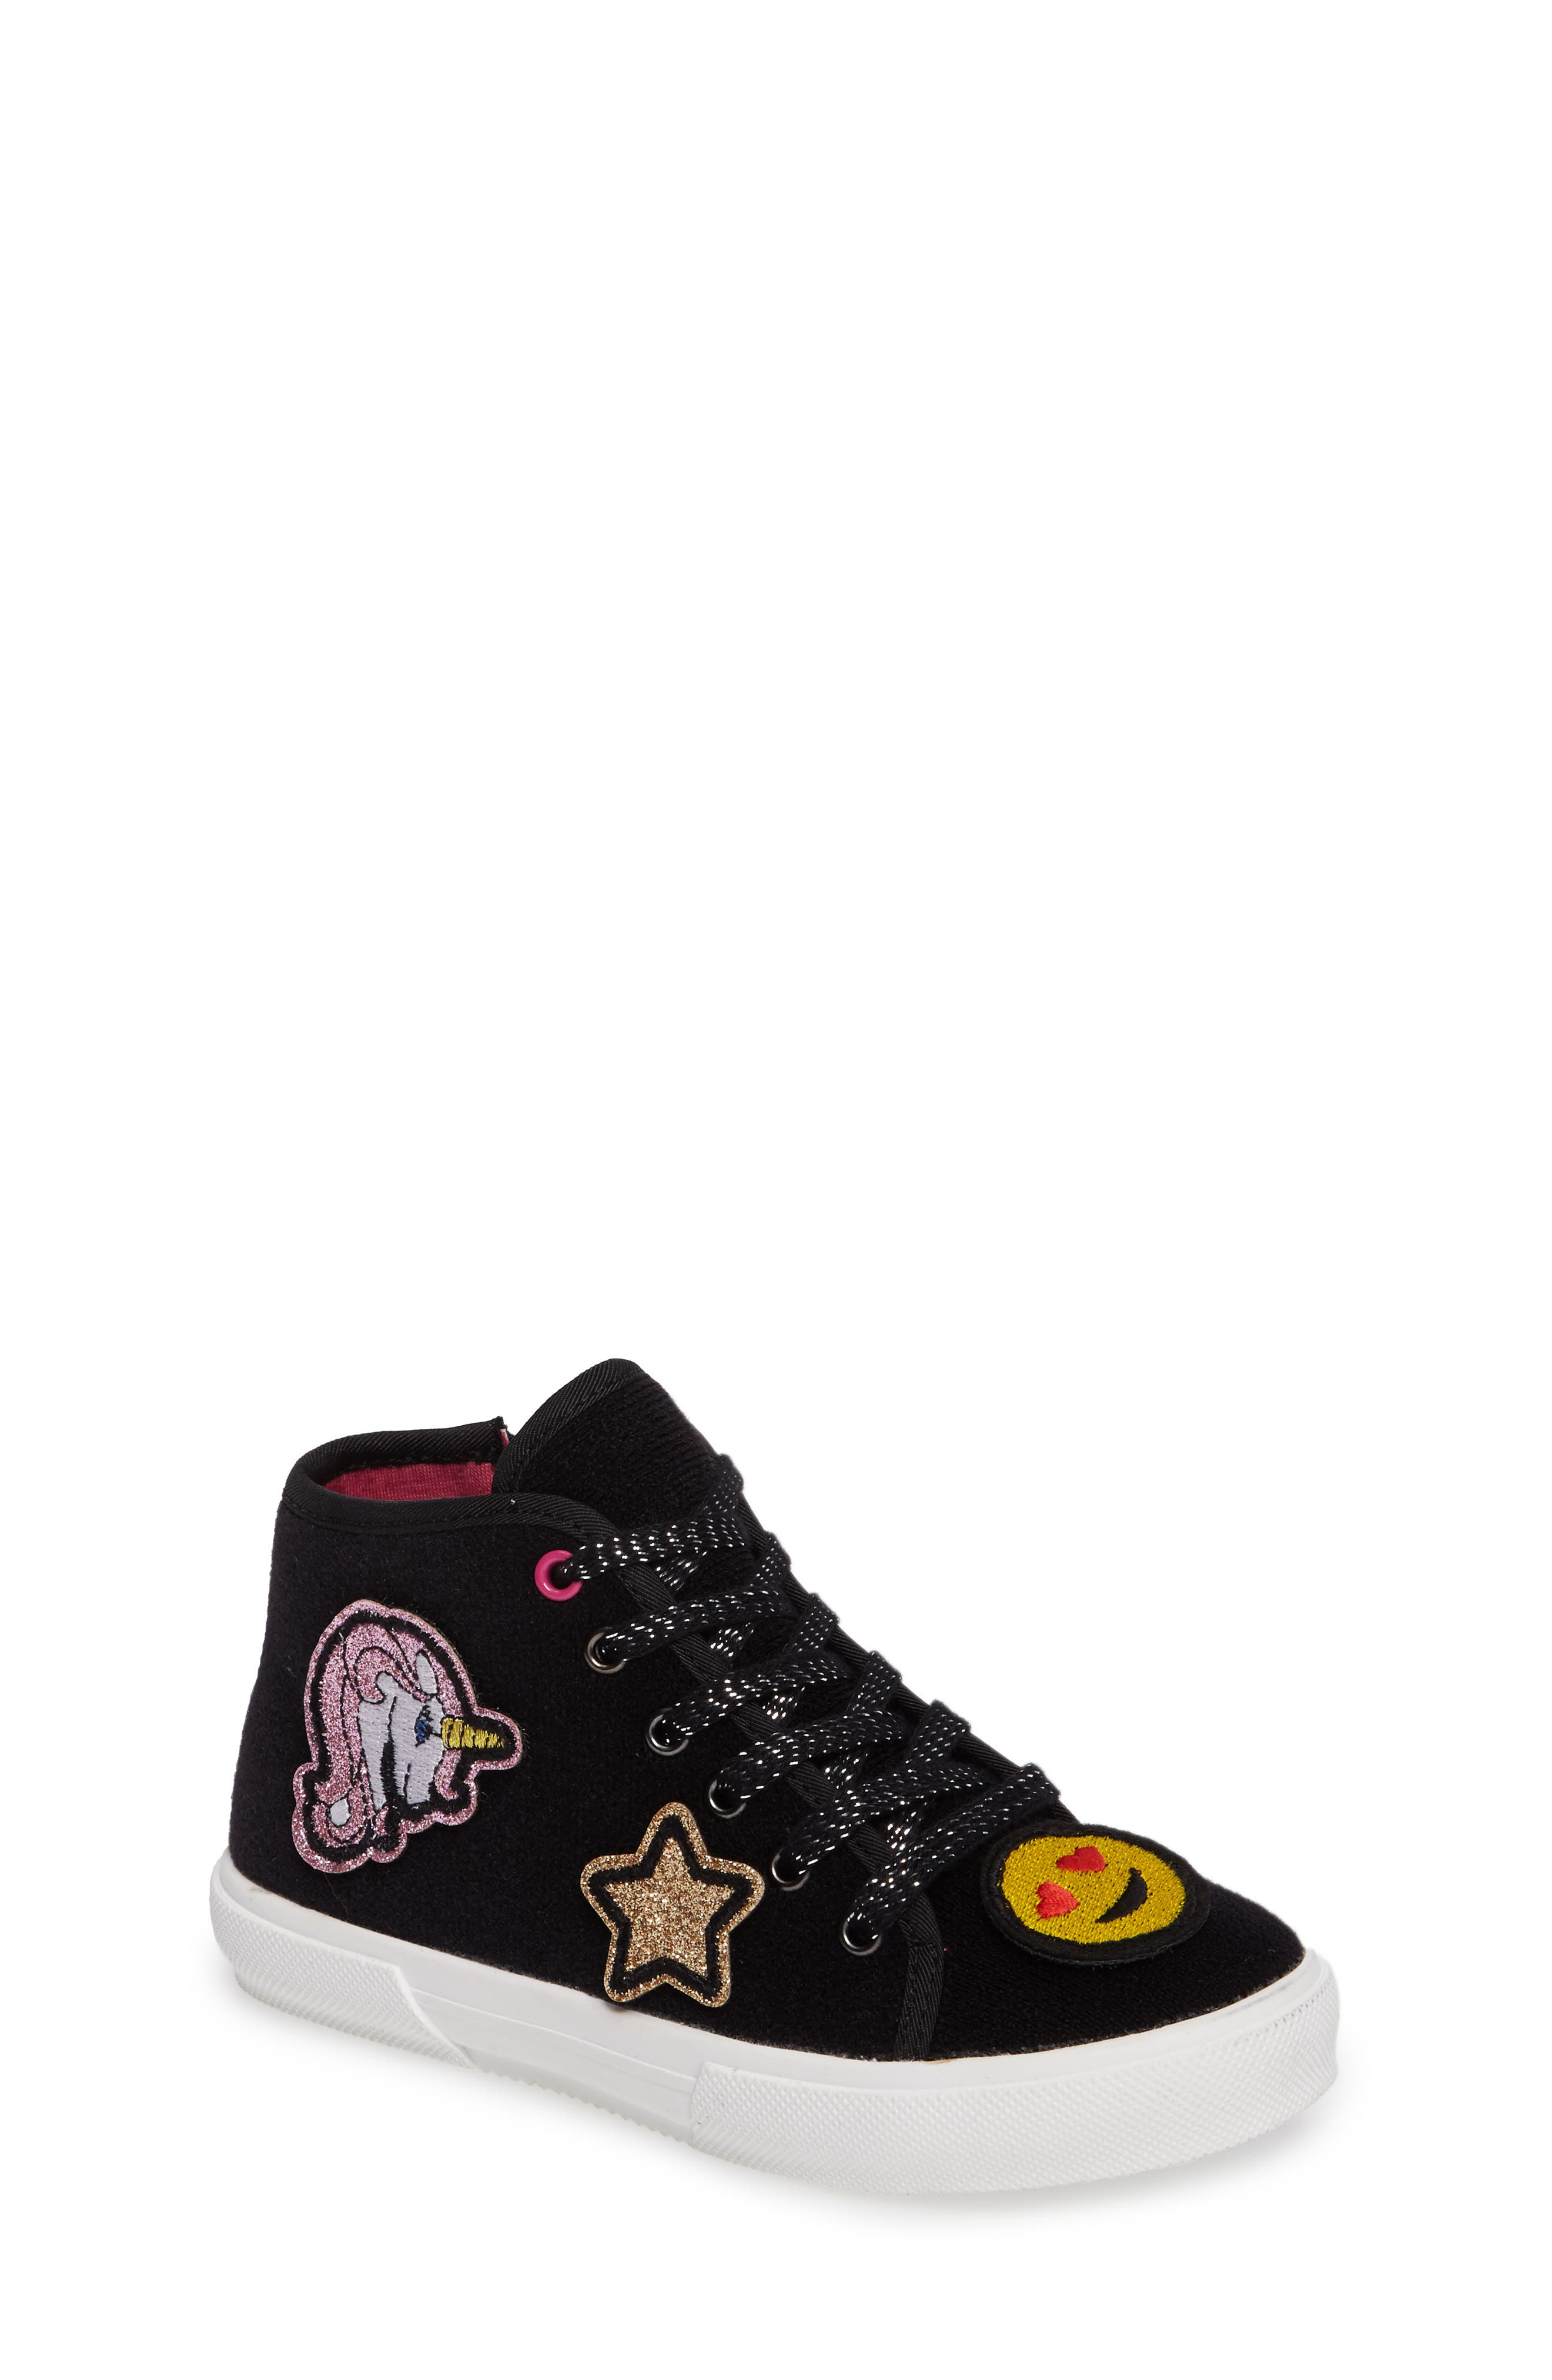 Tucker + Tate Craze Patches High Top Sneaker (Toddler, Little Kid & Big Kid)